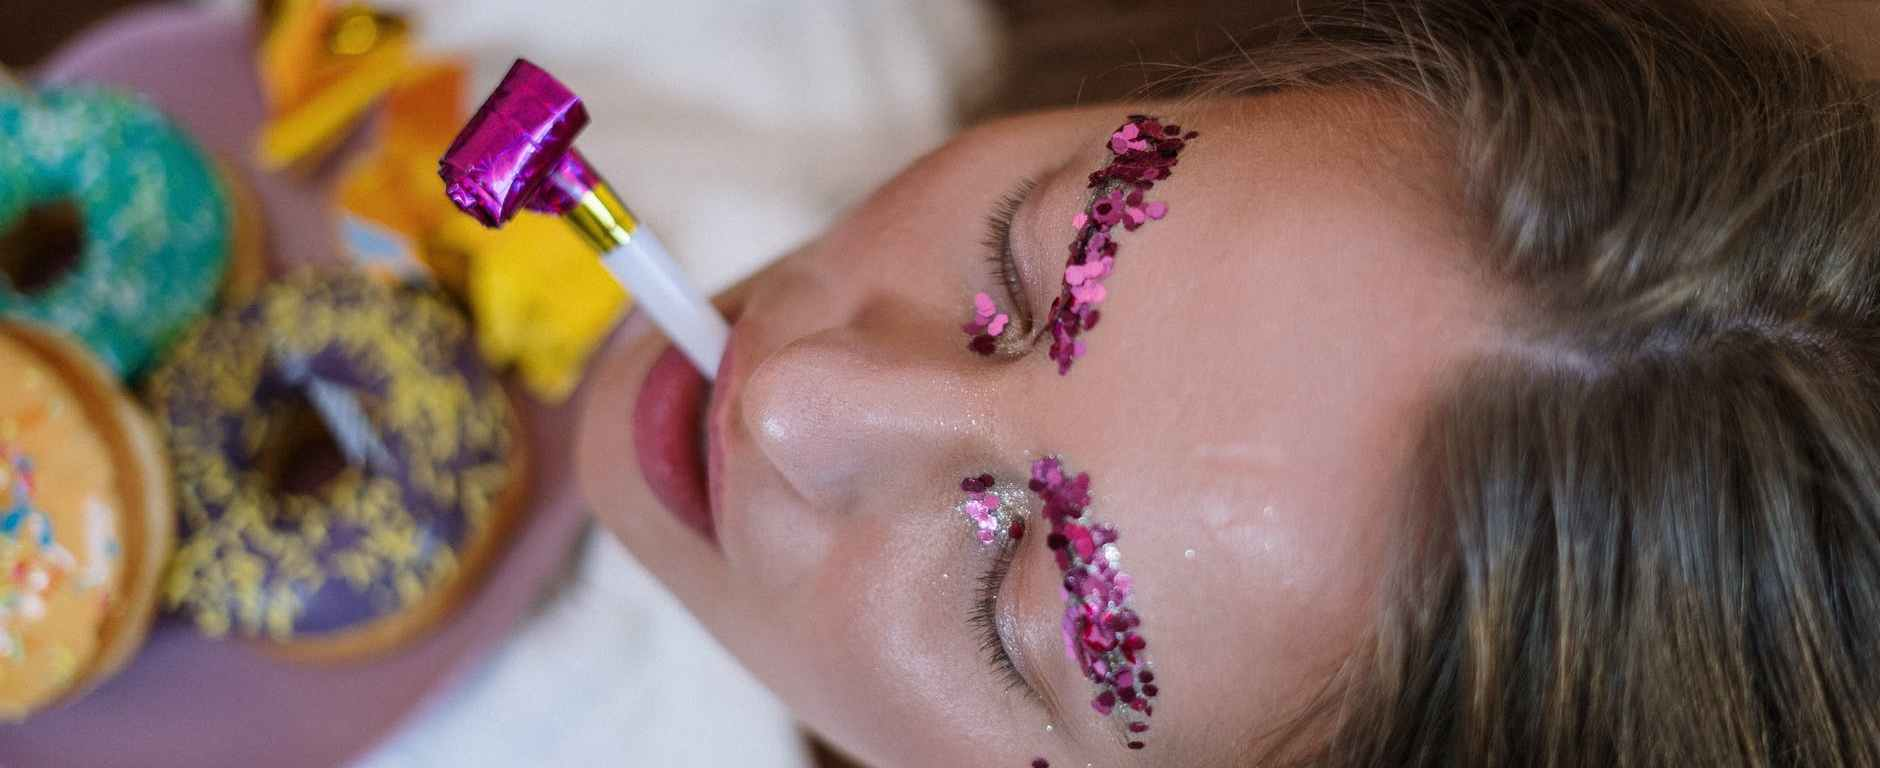 woman with sequins on her eyebrows